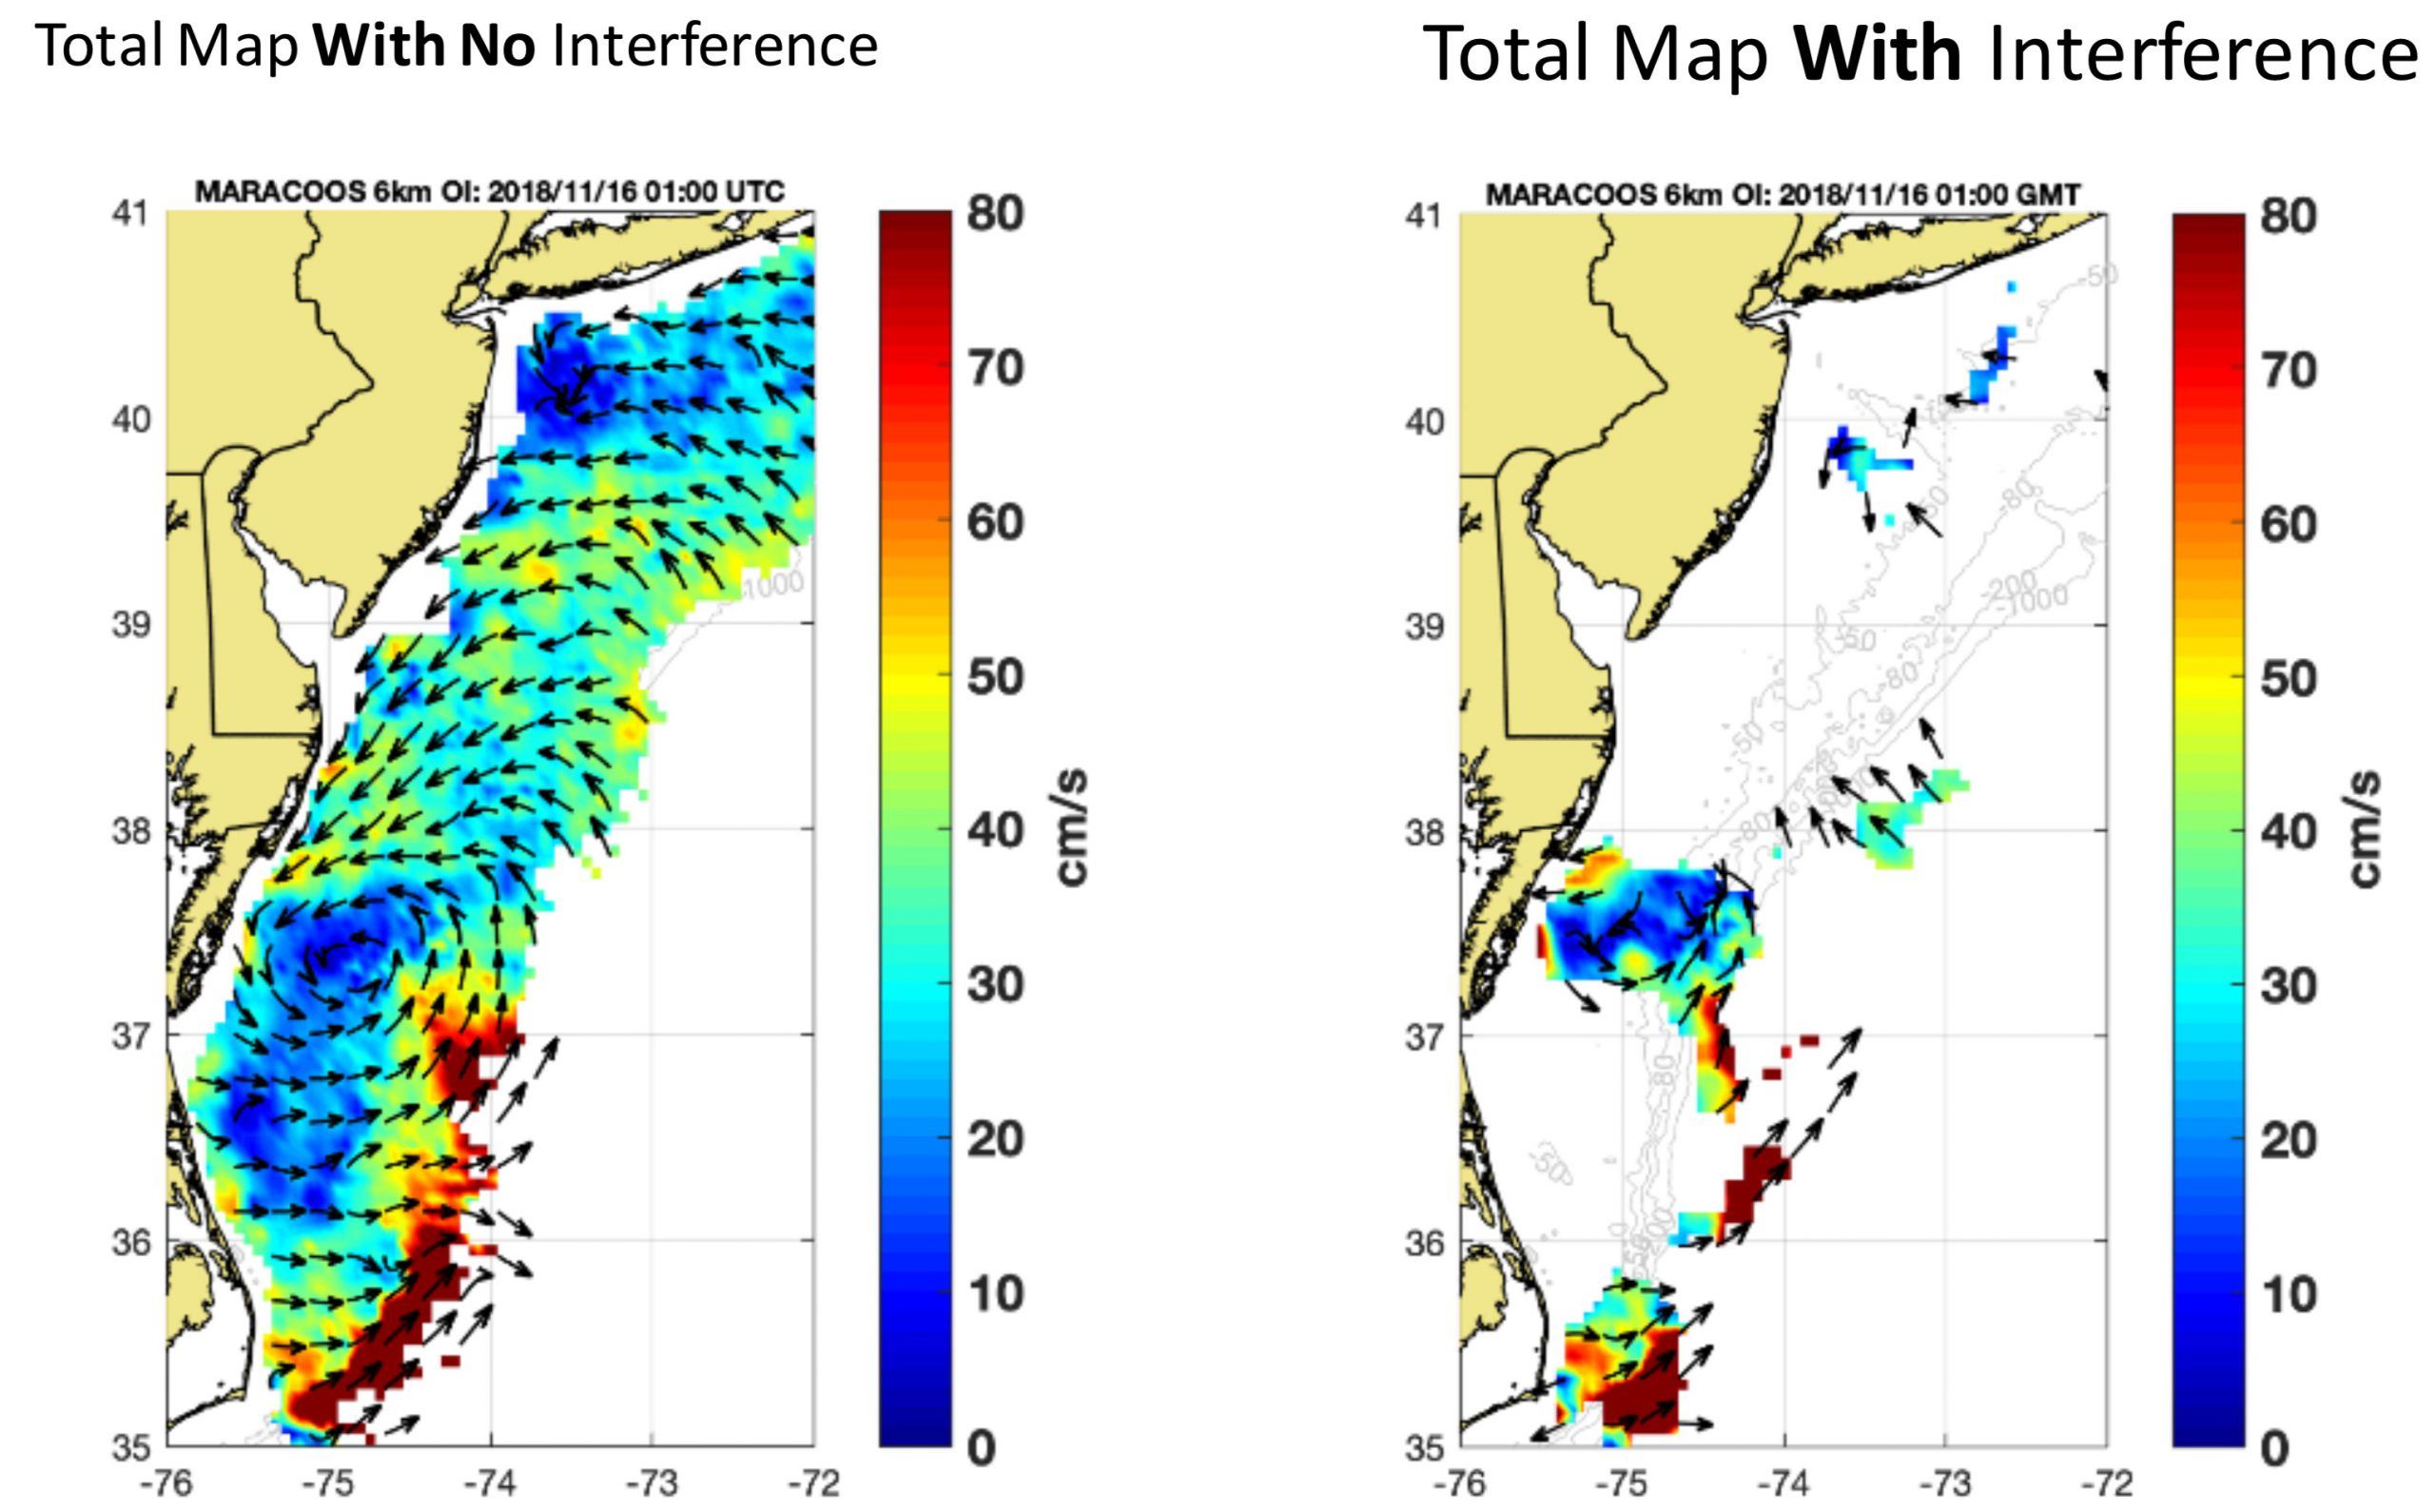 Caption: A snapshot of the present-day coverage of HFR-based surface currents from the MARACOOS HFR array at left, with the current speed shown in color and the direction by the arrows. At right, the same snapshot, but with the portions that would be affected by all planned offshore wind energy installations within the Mid-Atlantic Bight removed. This simulation illustrates the worst-case scenario of potential future HFR observations of surface currents given the planned offshore wind energy installations.